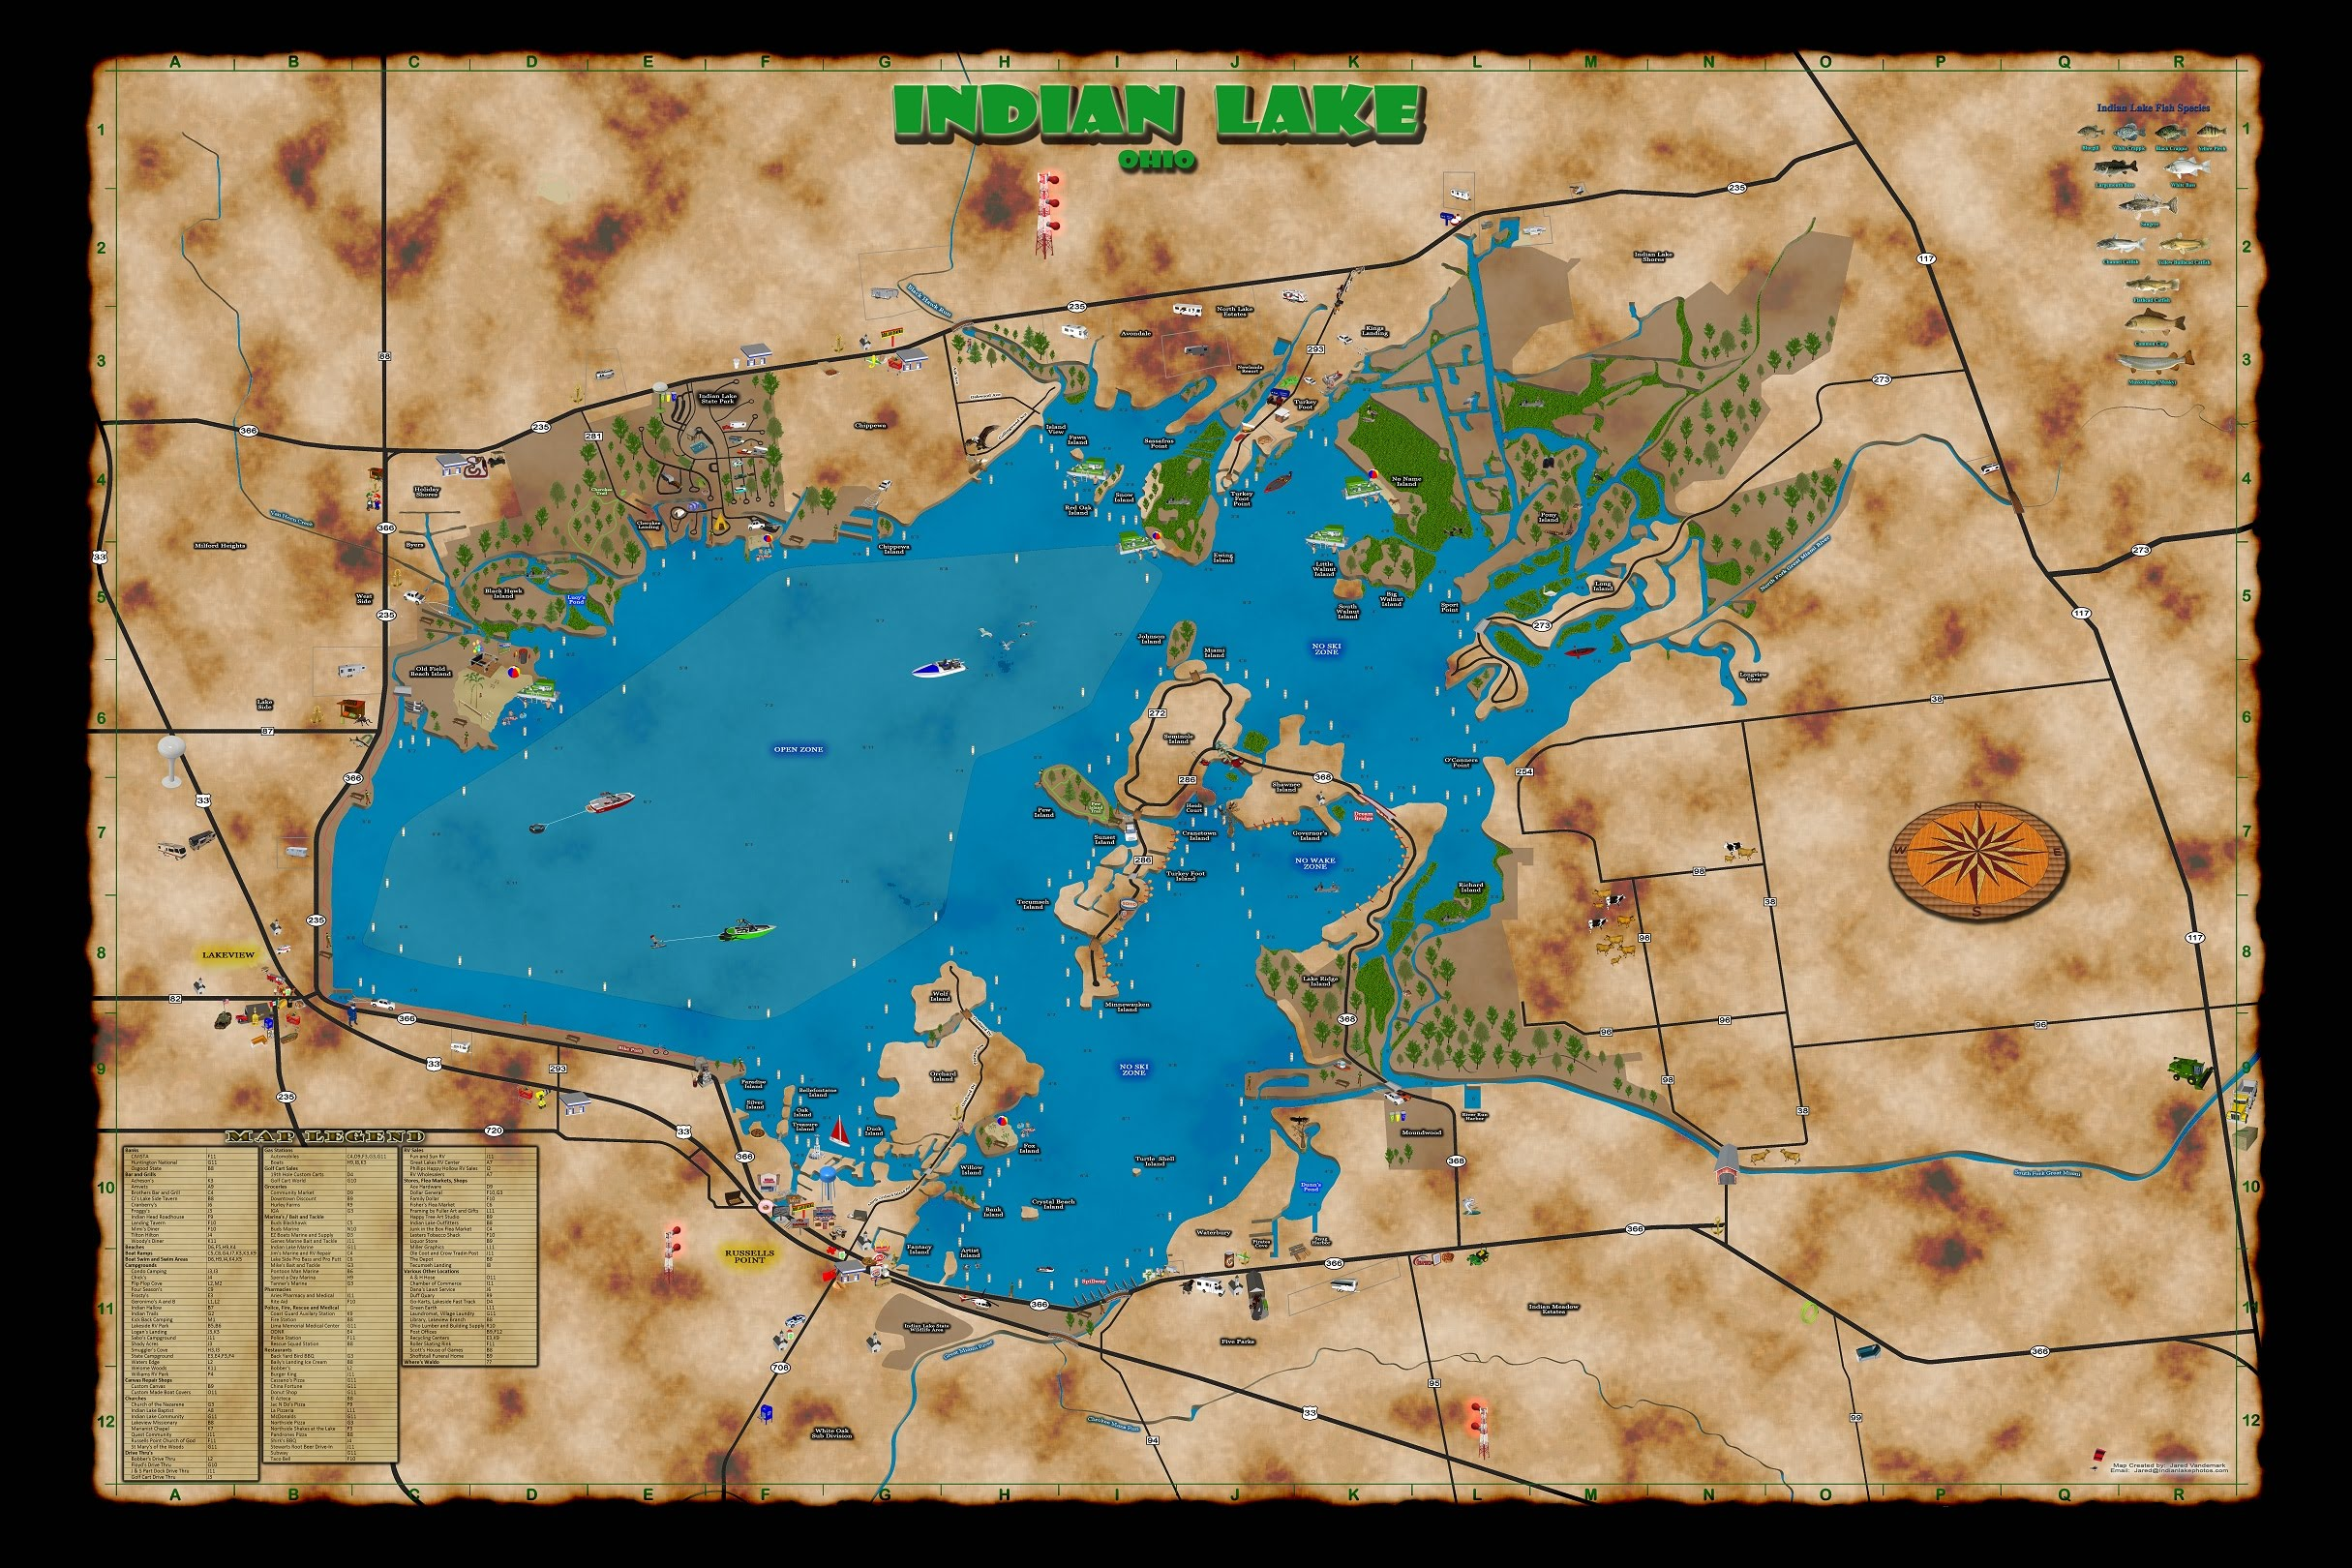 map of indian lake ohio Lake Banner Maps For Sale Indianlakephotos Com map of indian lake ohio